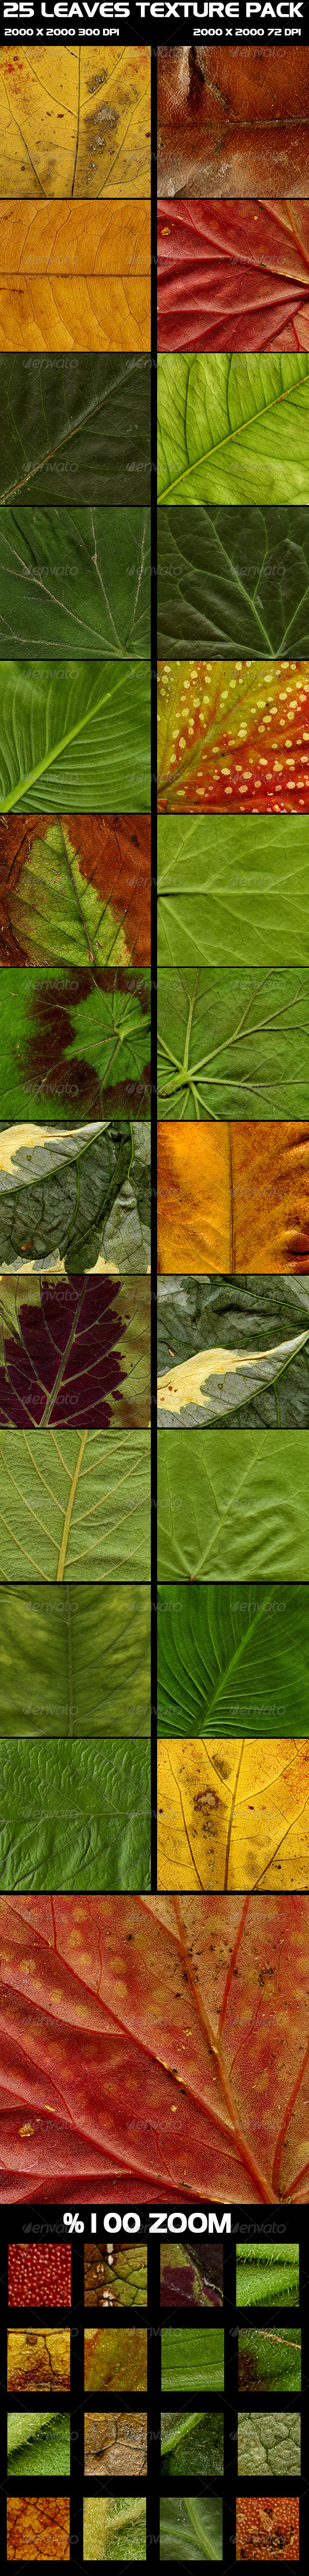 25 Leaves Texture Pack - Nature Textures